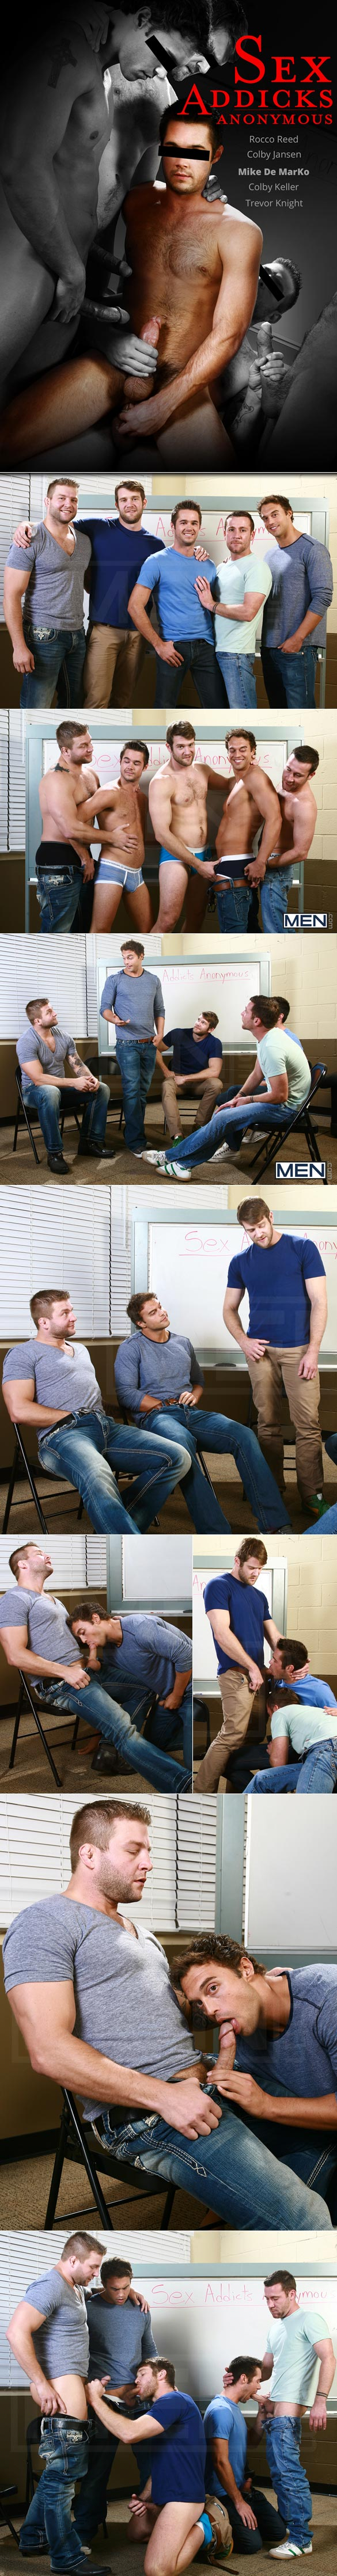 "Men.com: ""Sex Addicks Anonymous"" featuring Trevor Knight, Colby Keller, Colby Jansen, Rocco Reed and Mike De Marko"